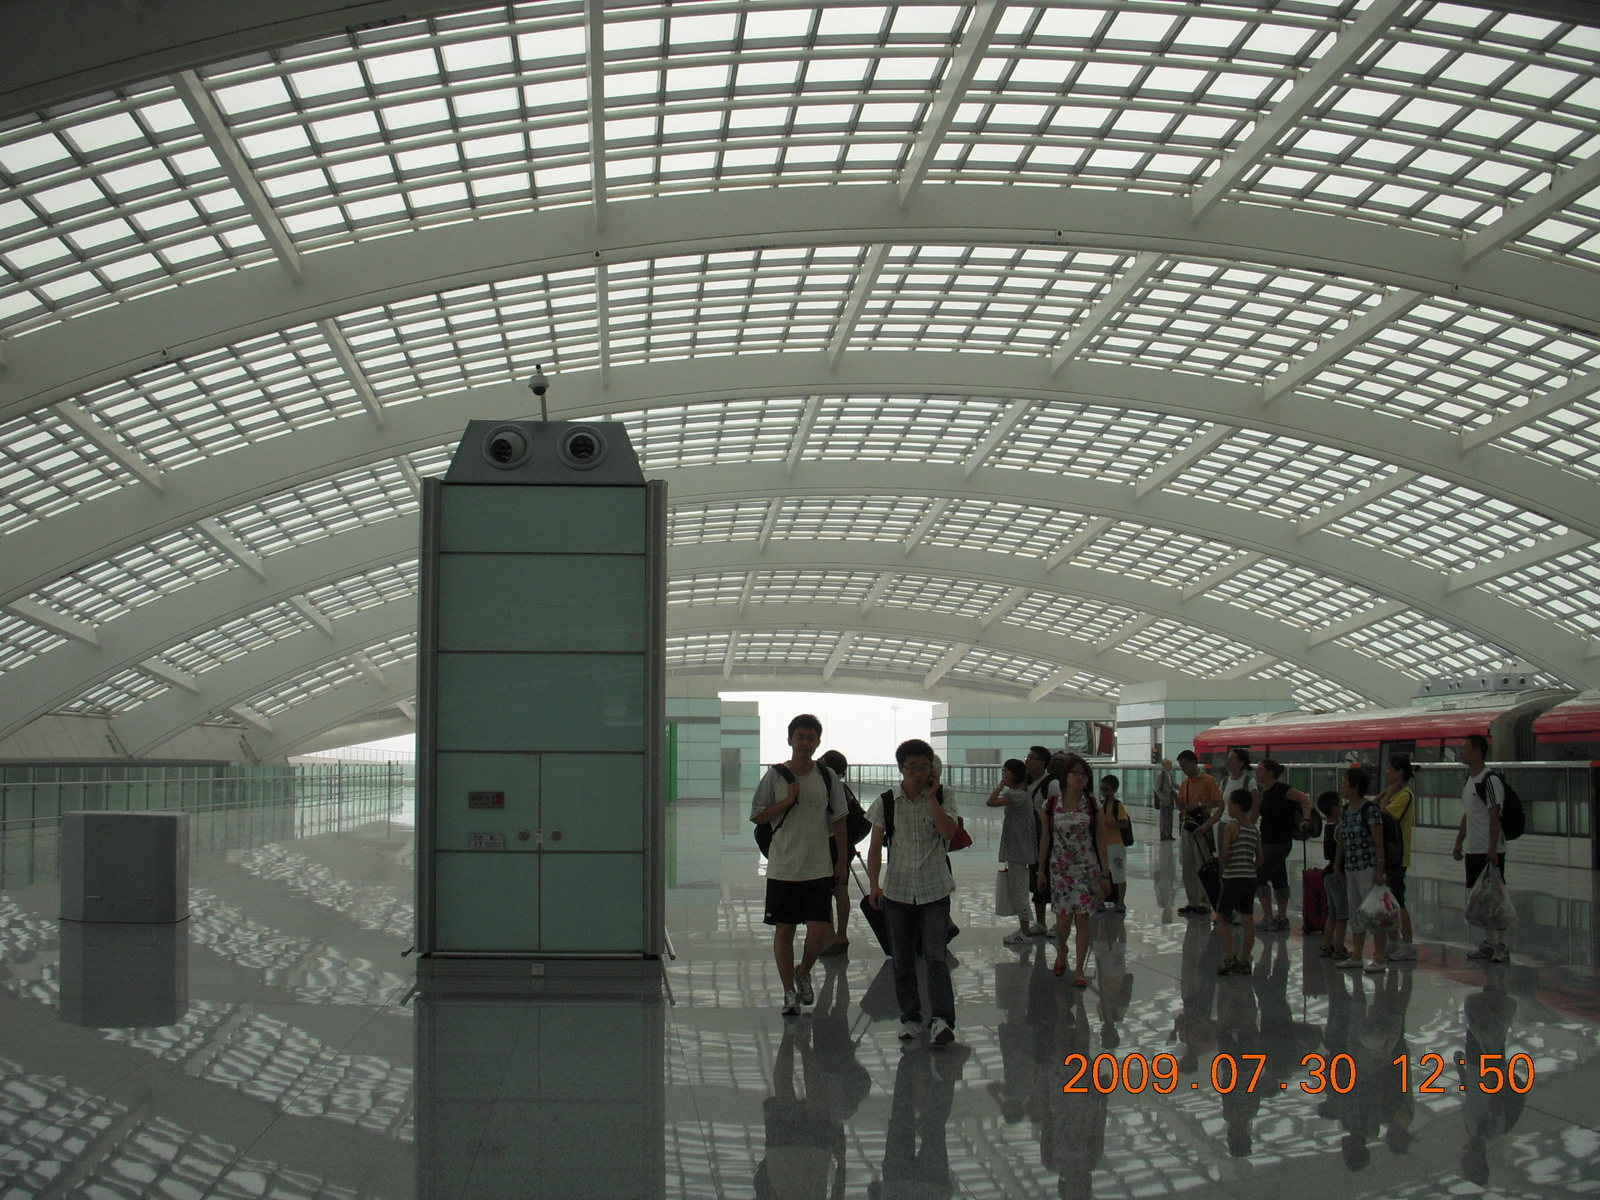 China eclipse - Beijing airport train station